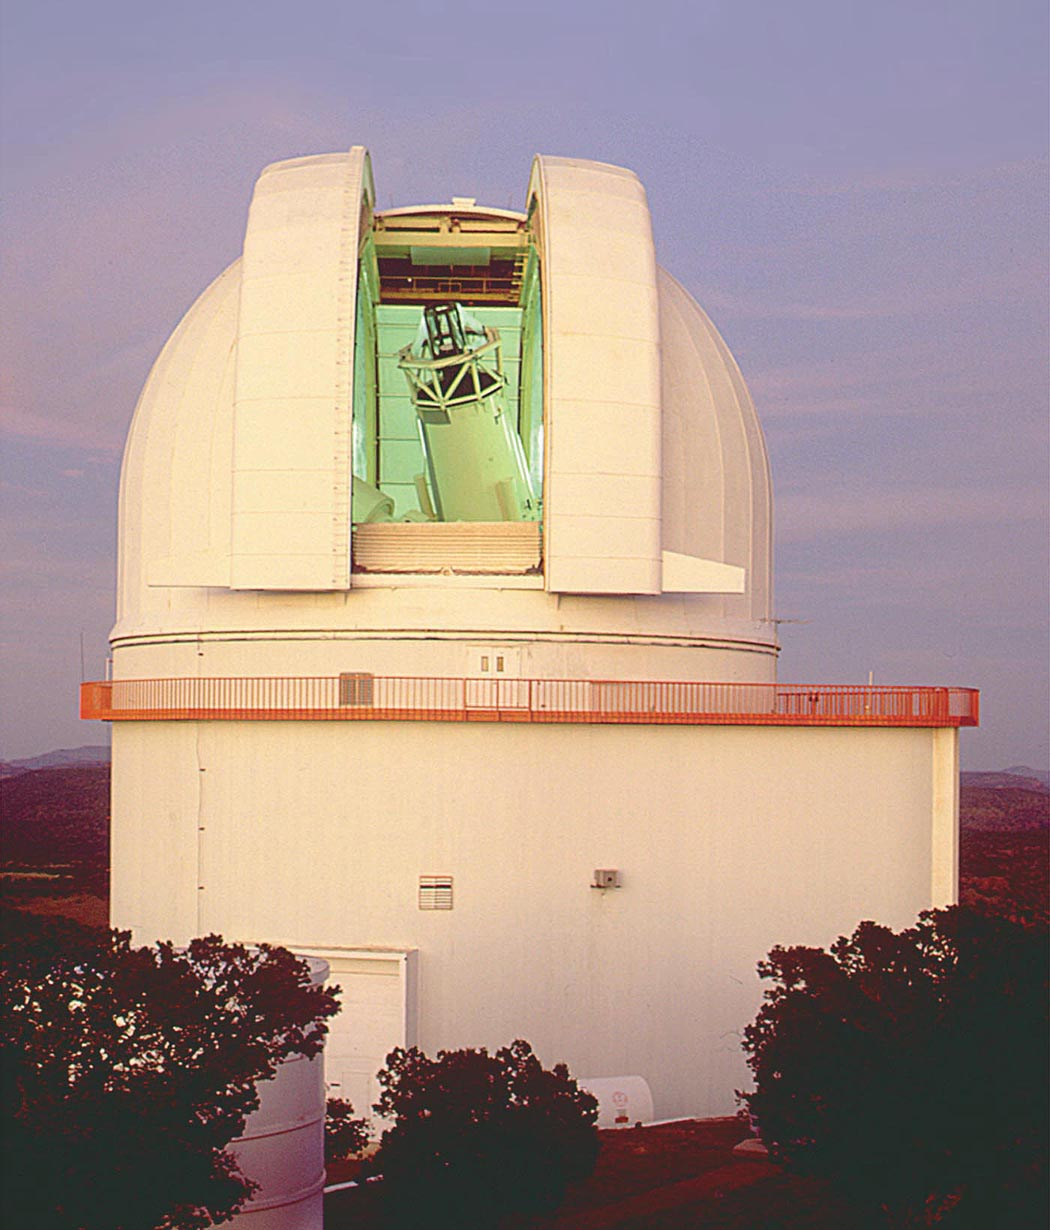 Harlan J. Smith Telescope at McDonald Observatory